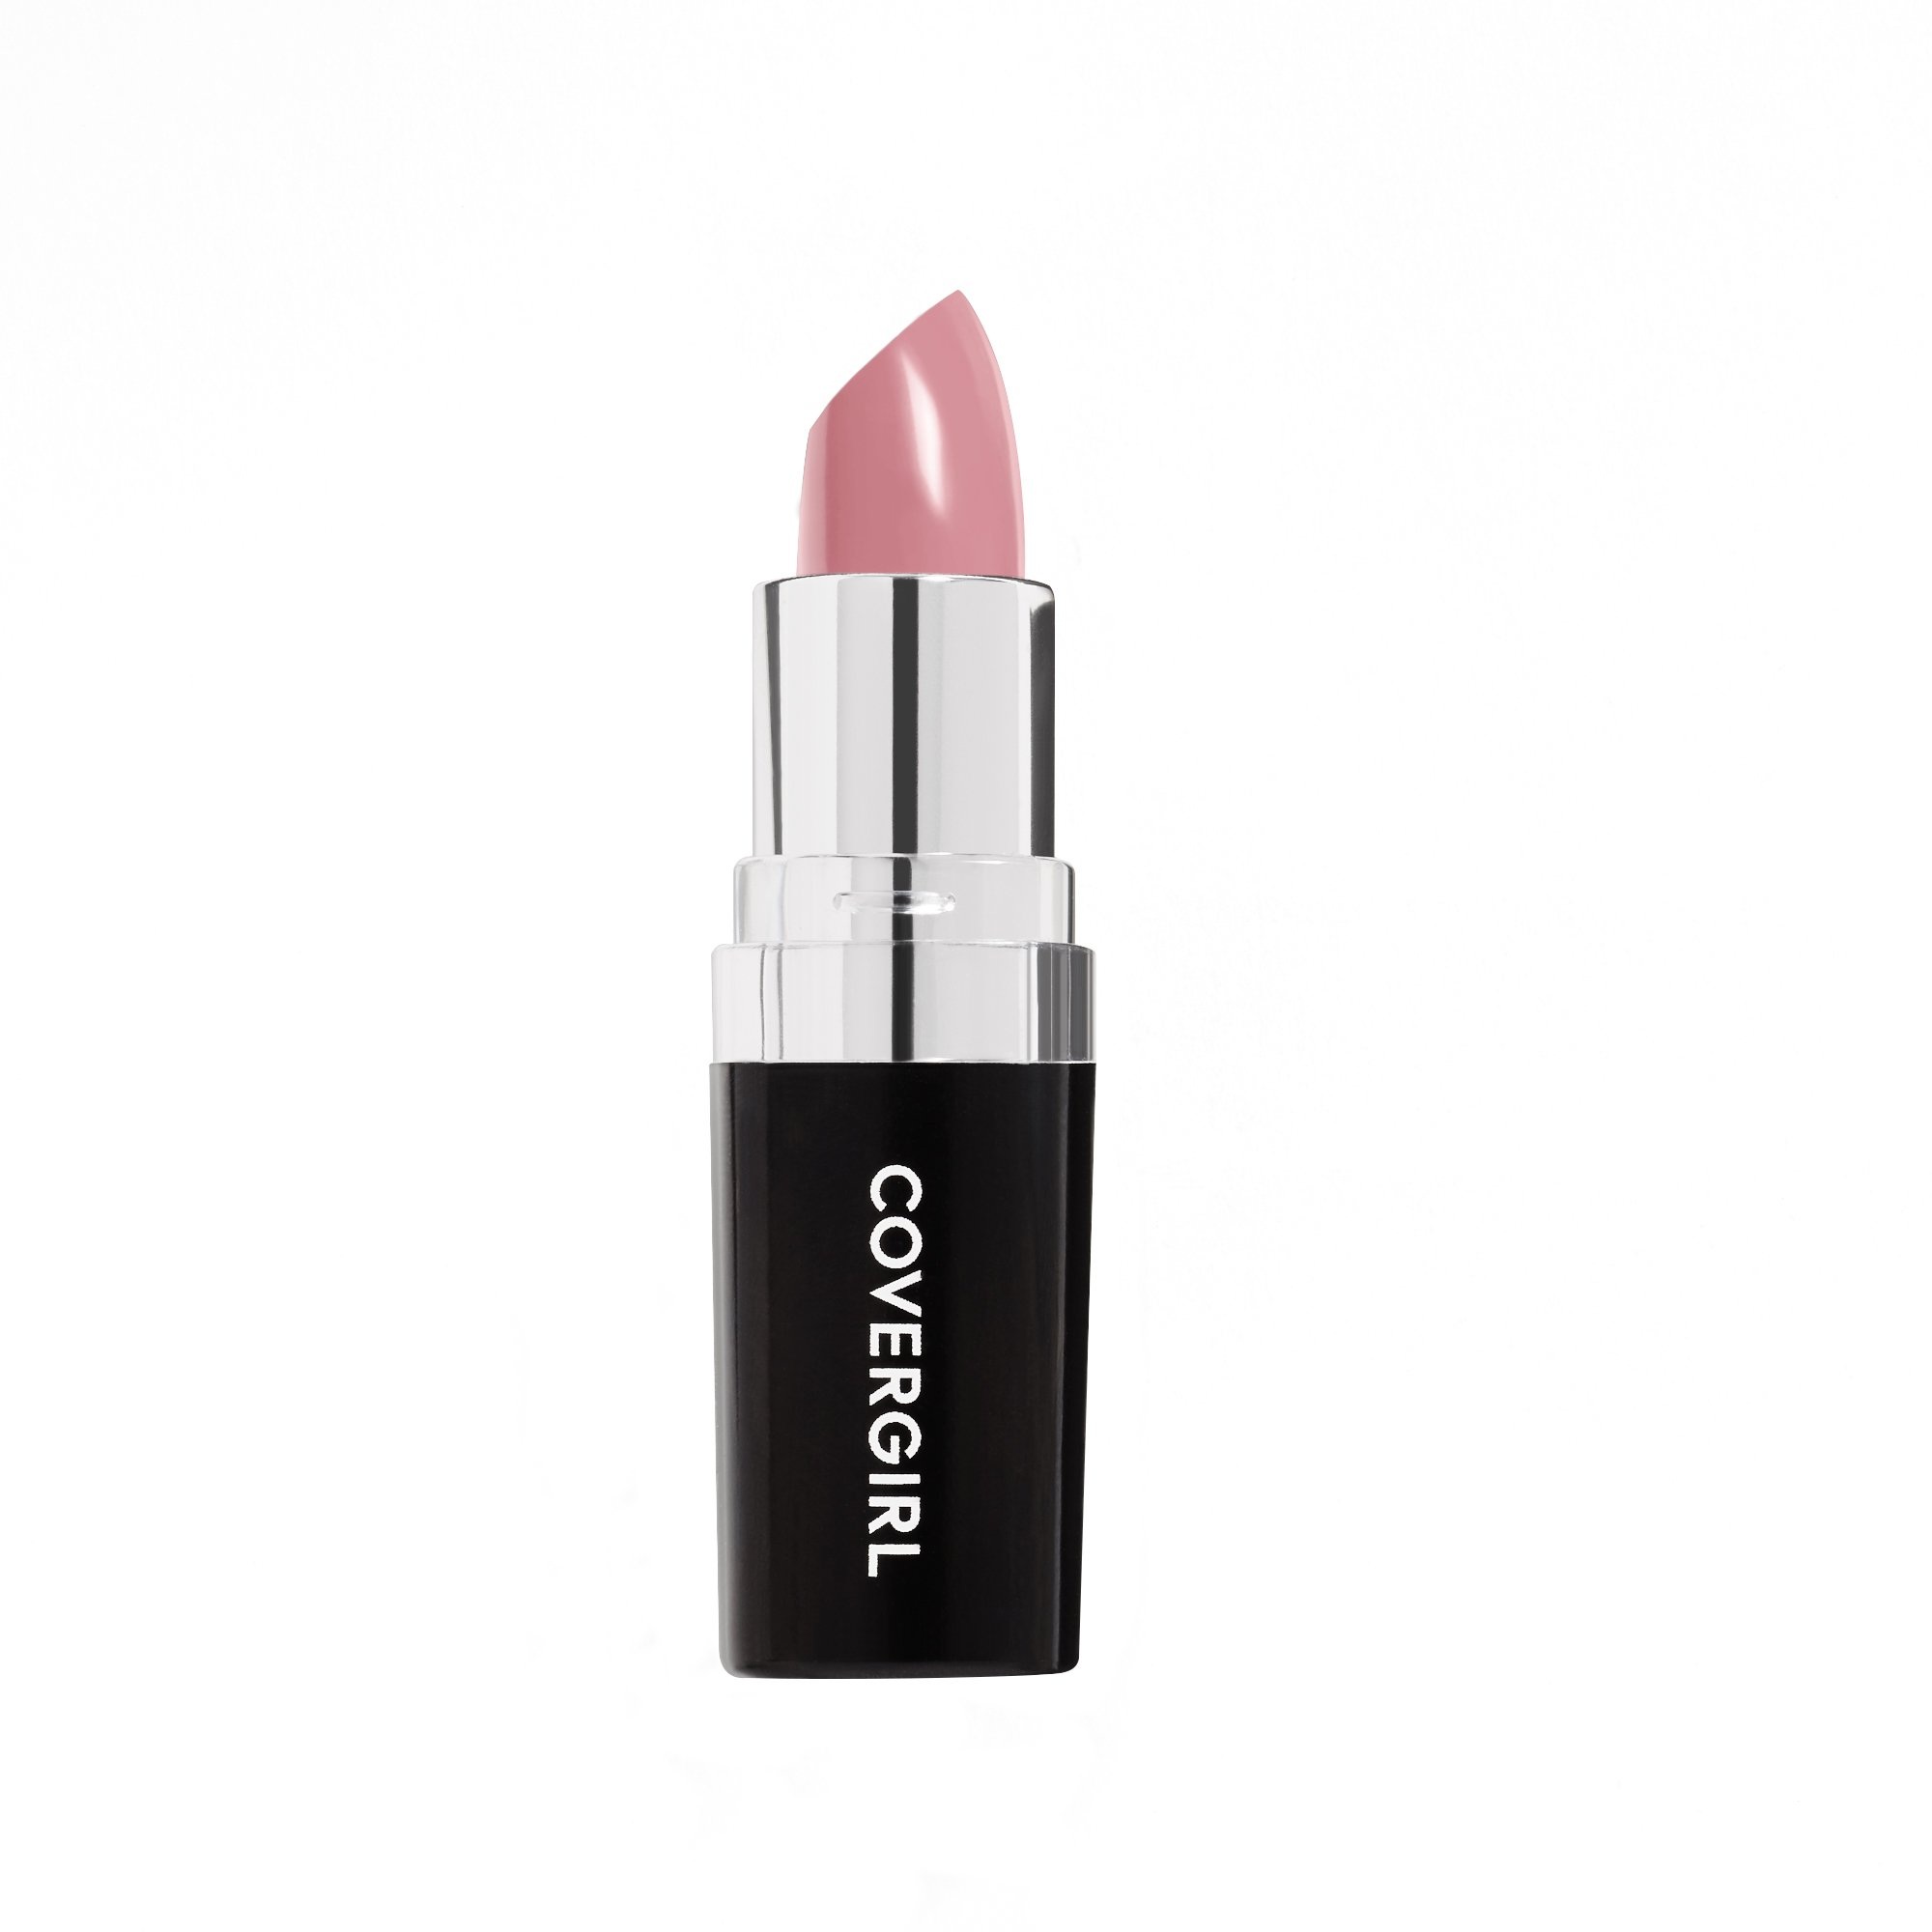 COVERGIRL Continuous Color Lipstick Rose Quartz 415.13 oz (packaging may vary)